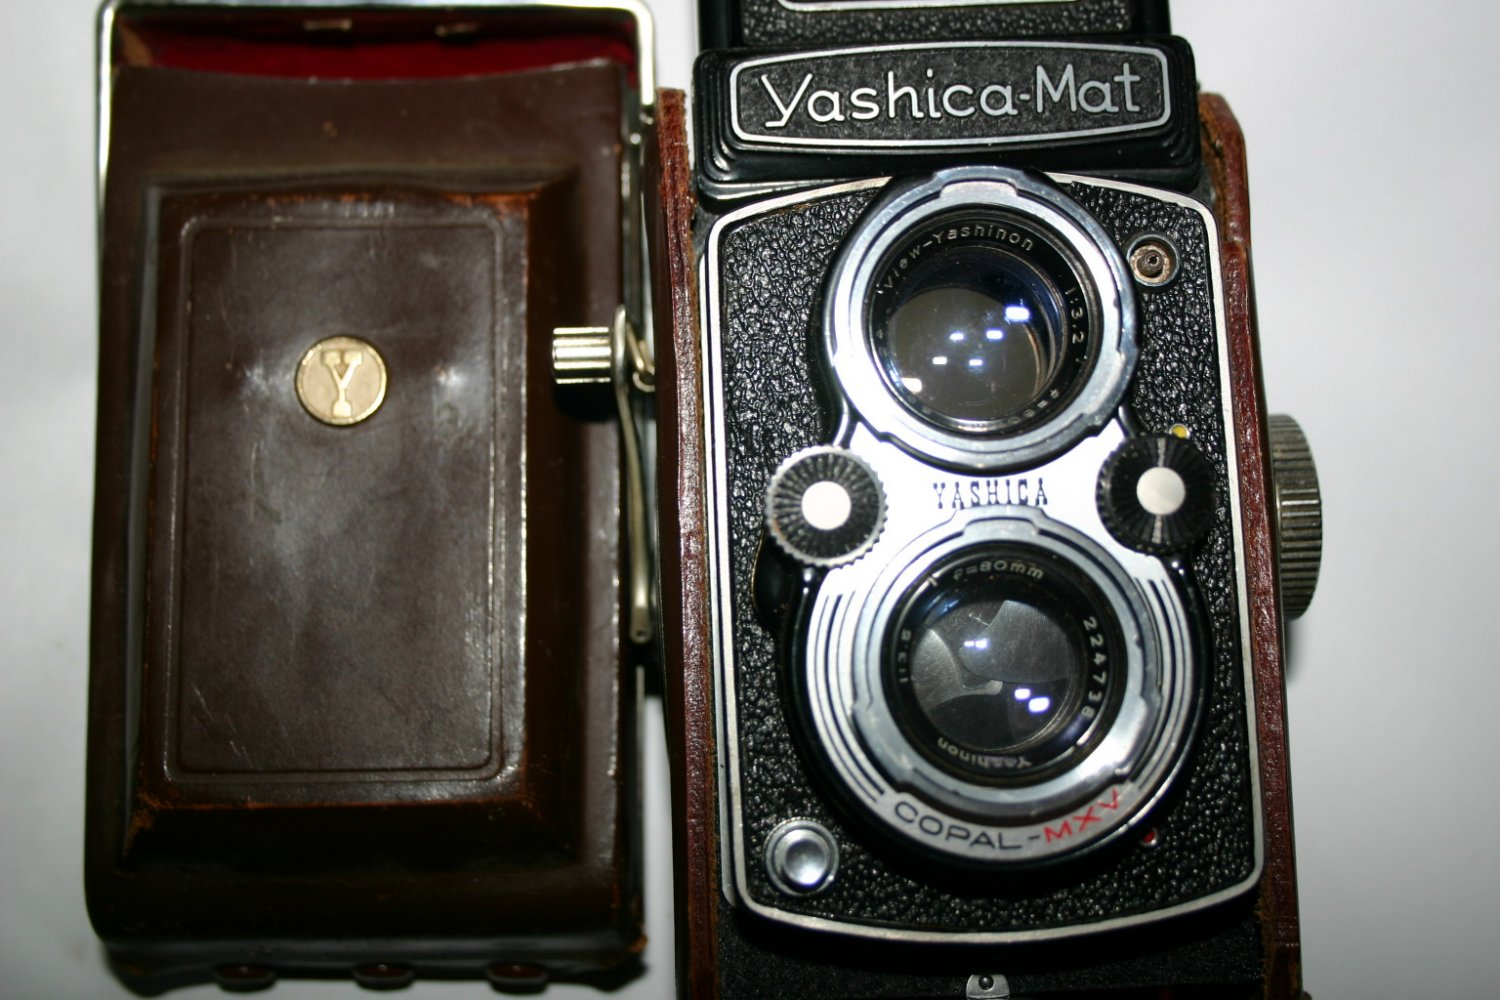 Rare 1957 YASHICA MAT COPAL MXV 6�6 TLR TWIN LENS REFLEX JAPANESE CAMERA